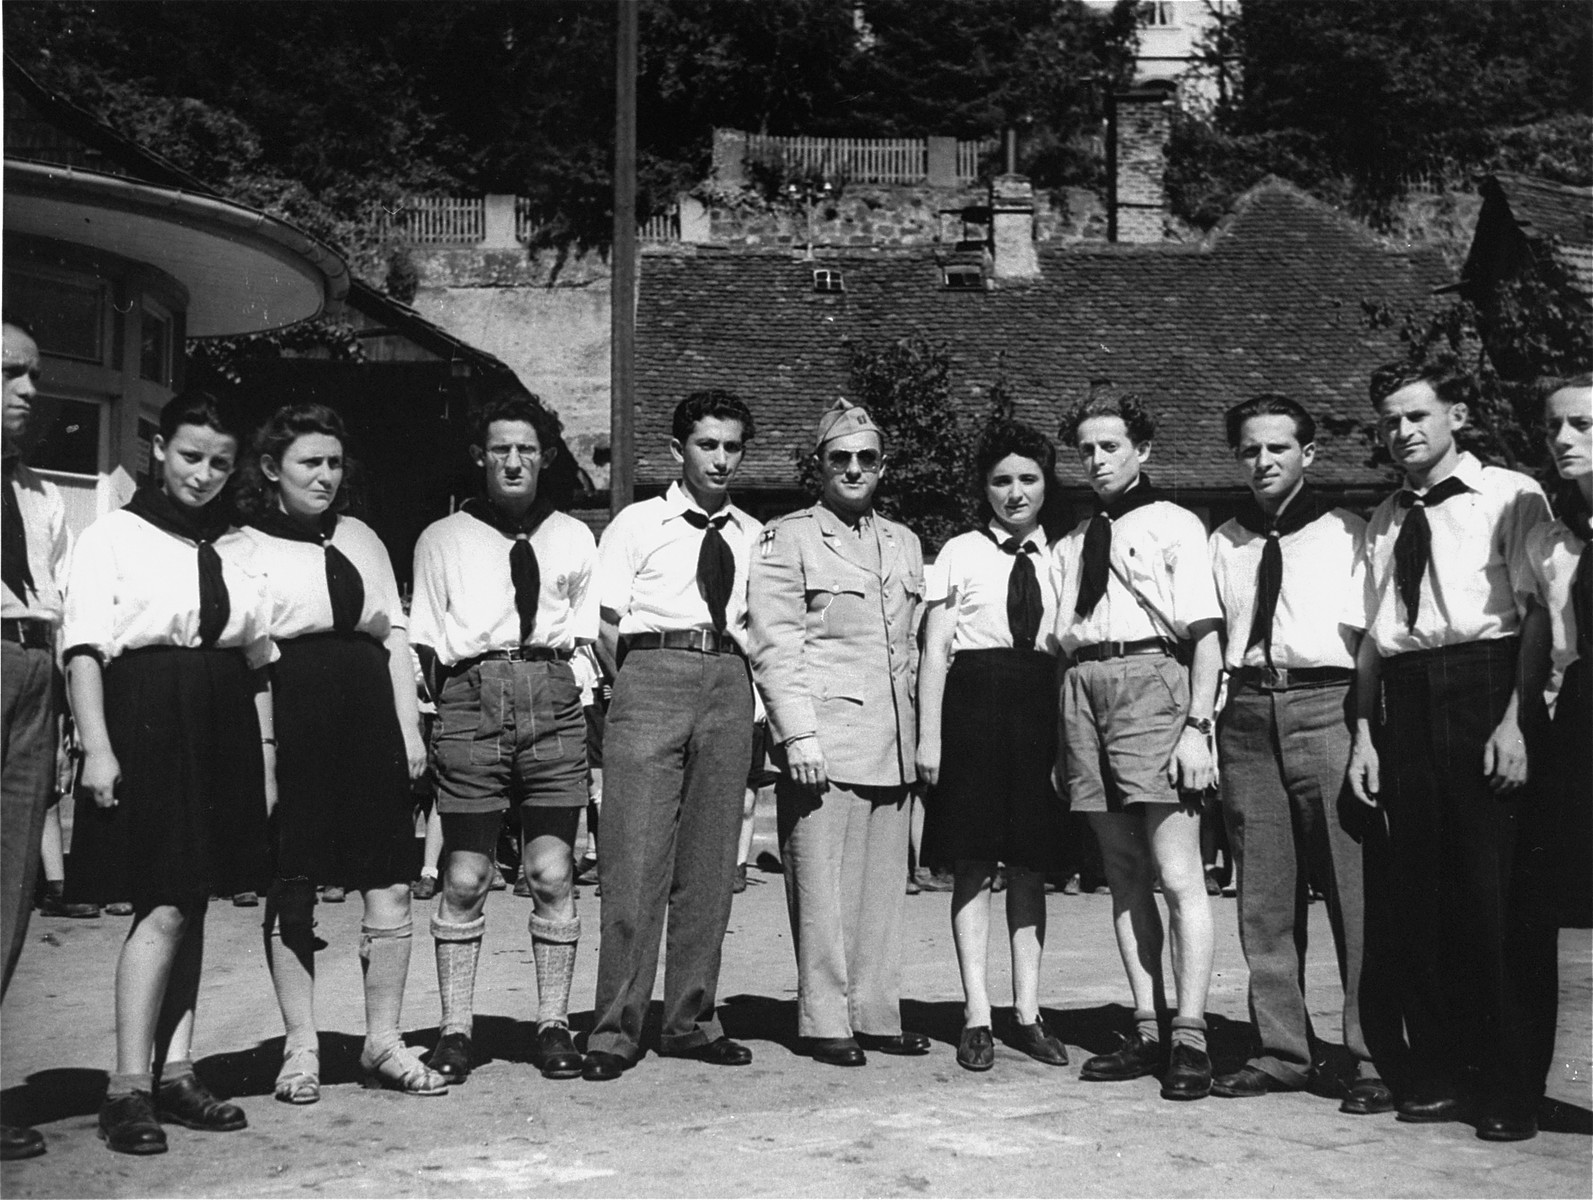 Group portrait of the teaching staff of the Lindenfels displaced persons' center for children.  Among those pictured are Mayer Zarnowiecki (fourth from the left), Mundek Brand (eighth from the left), Mordechai Gruszko (ninth from the left), and the donor, Rose Guterman (extreme right).  The children's center was administered by members of the Hashomer Hatzair Zionist youth movement, who prepared the children for immigration to Palestine.